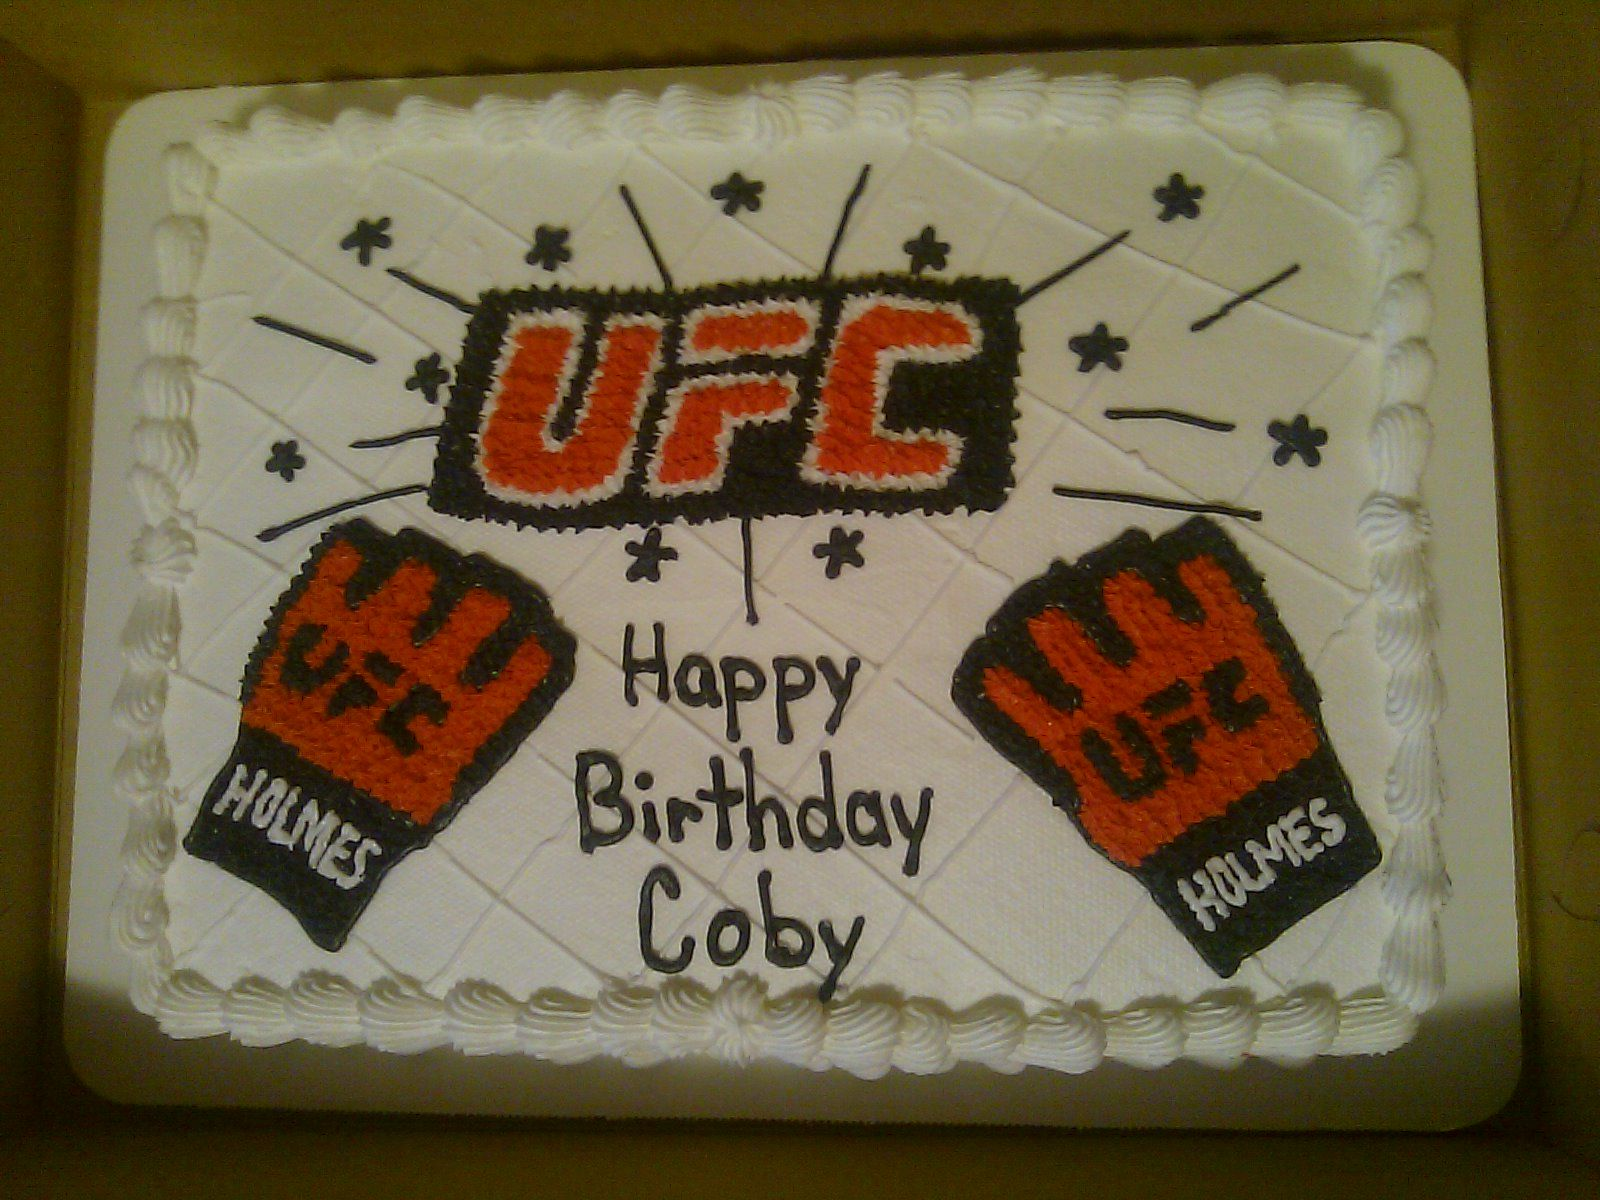 Ufc Birthday Cake For Coby Map Cake Happy Birthday Cards